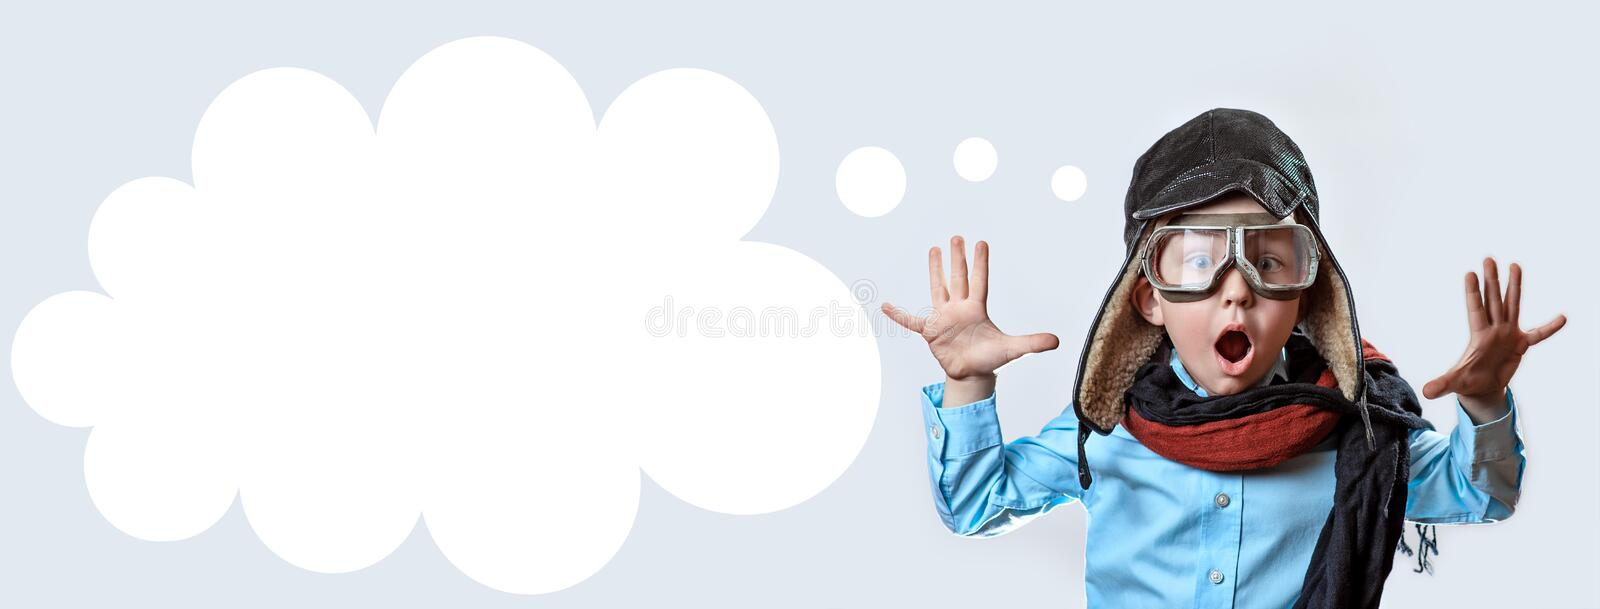 Boy in a blue shirt, pilot`s glasses, hat and scarf raised his hands on a light background stock photos